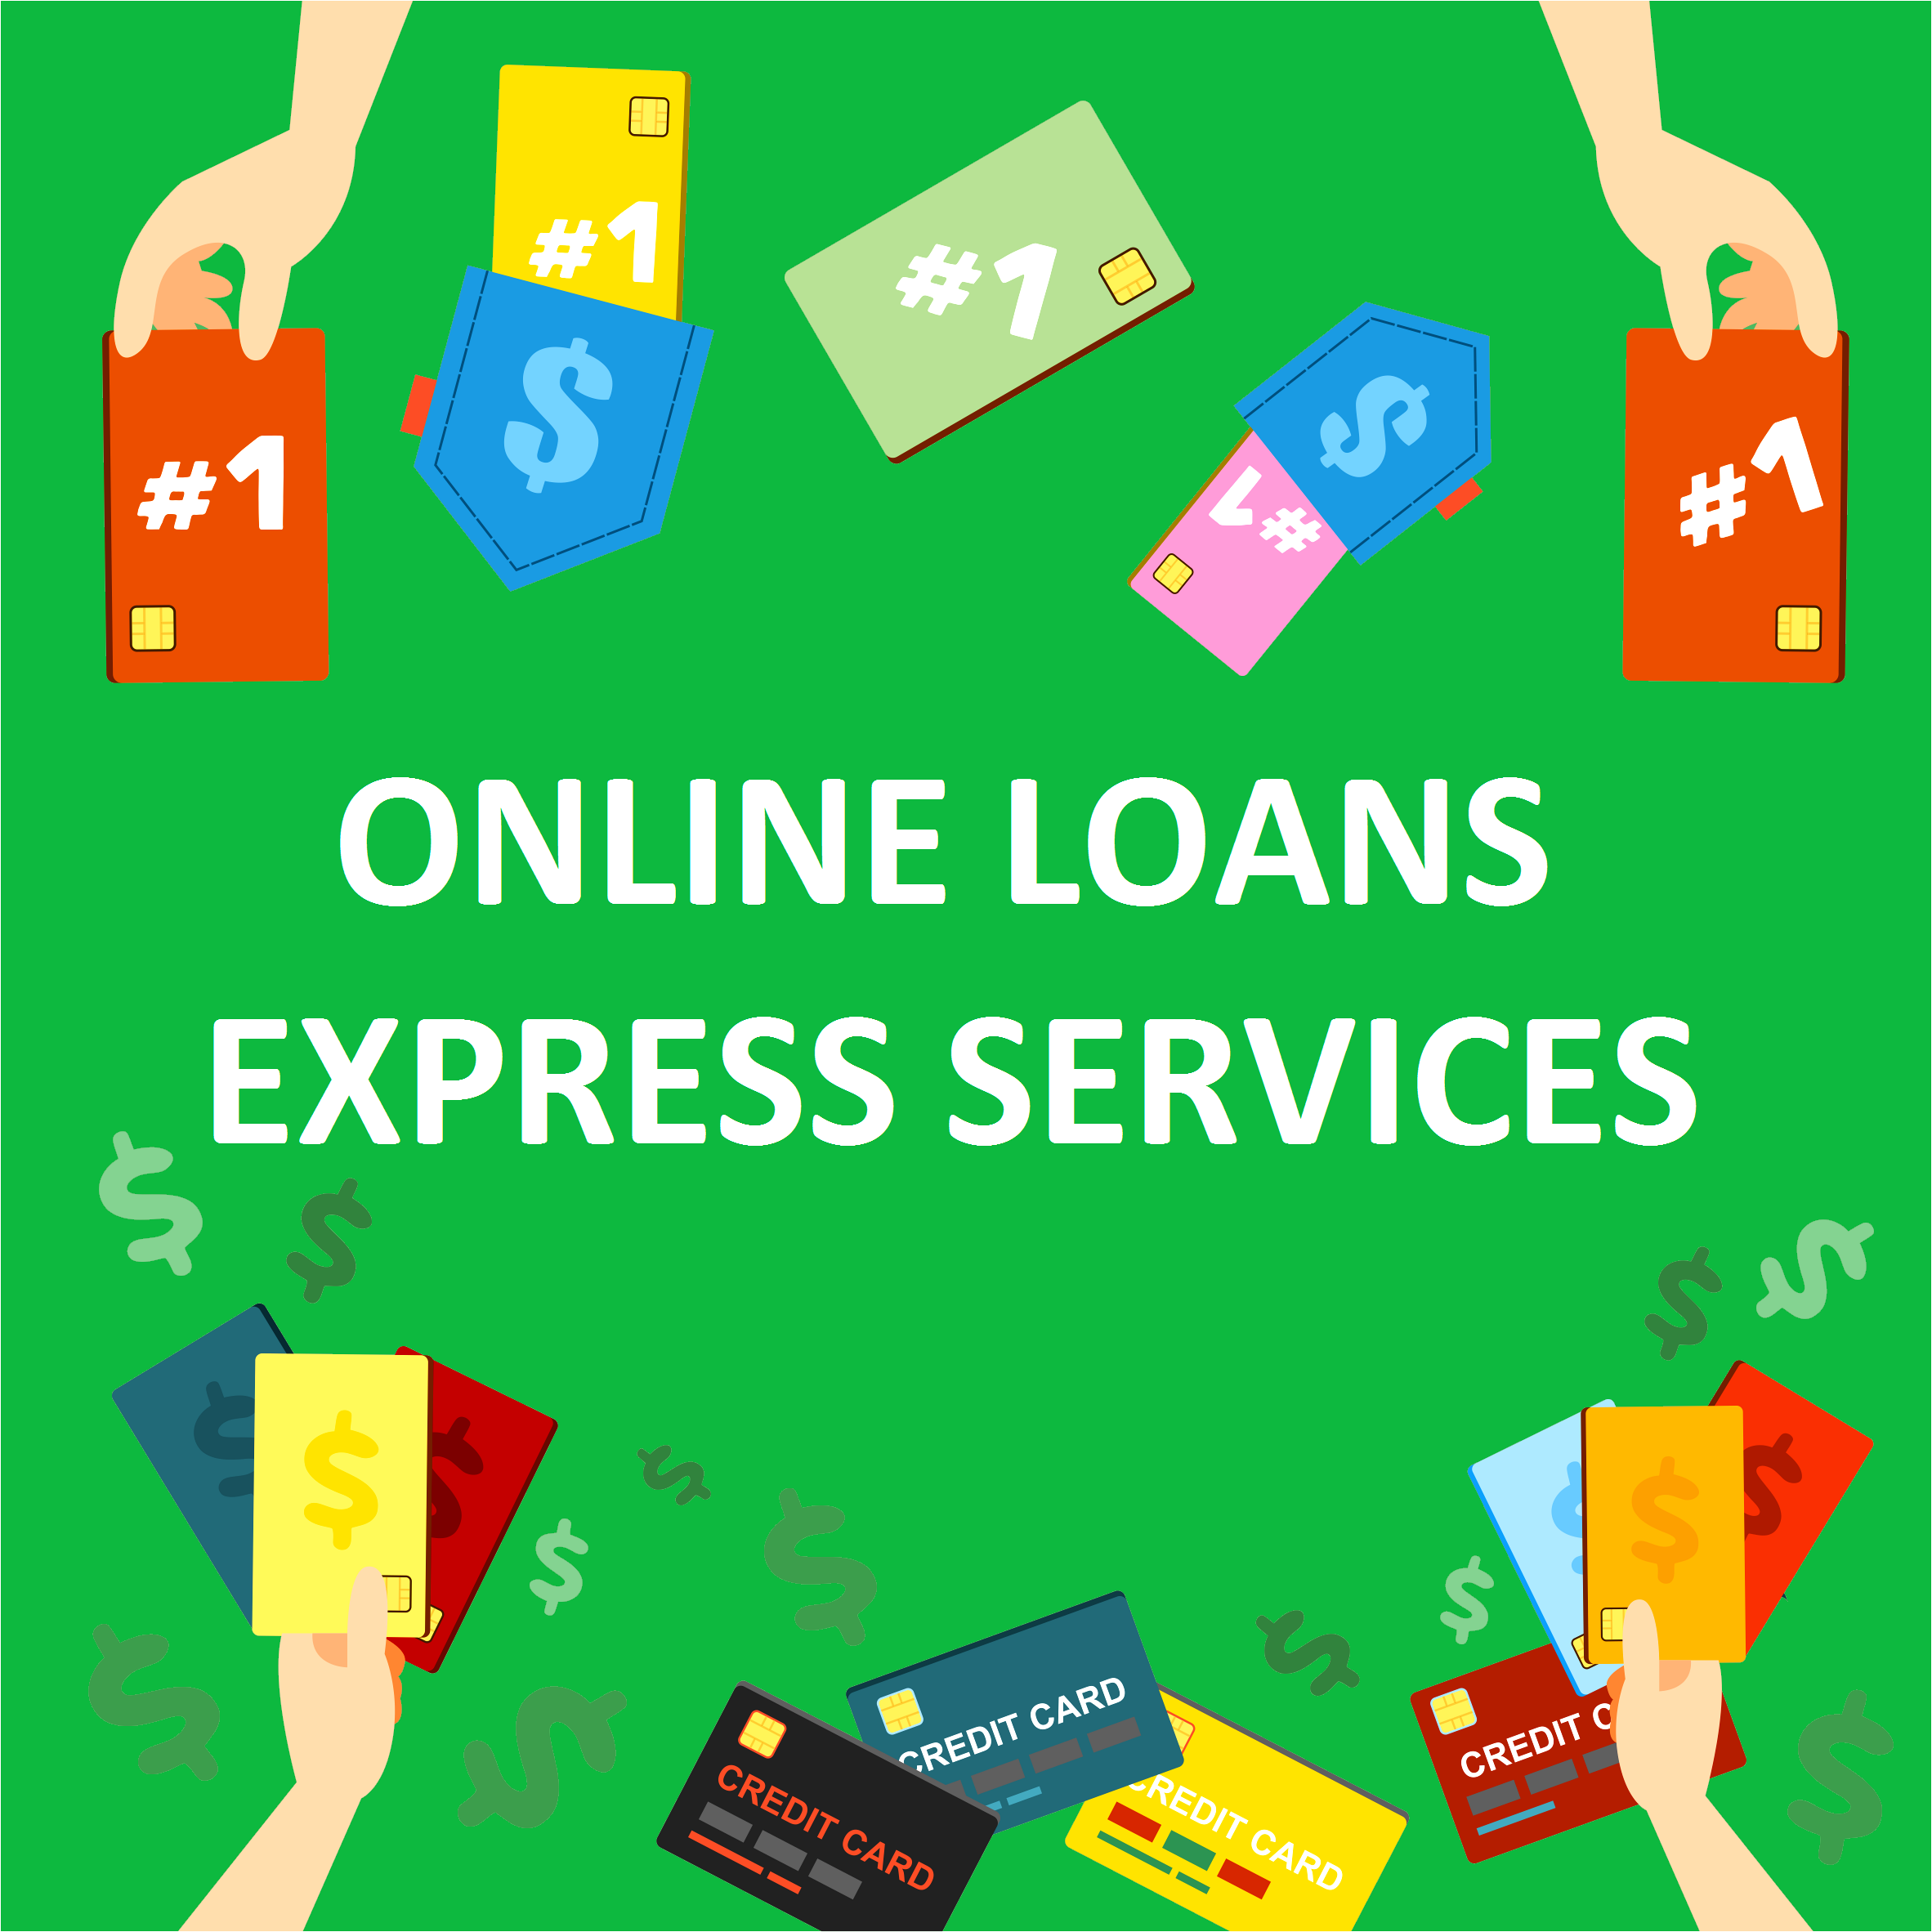 Online Loans Express Services